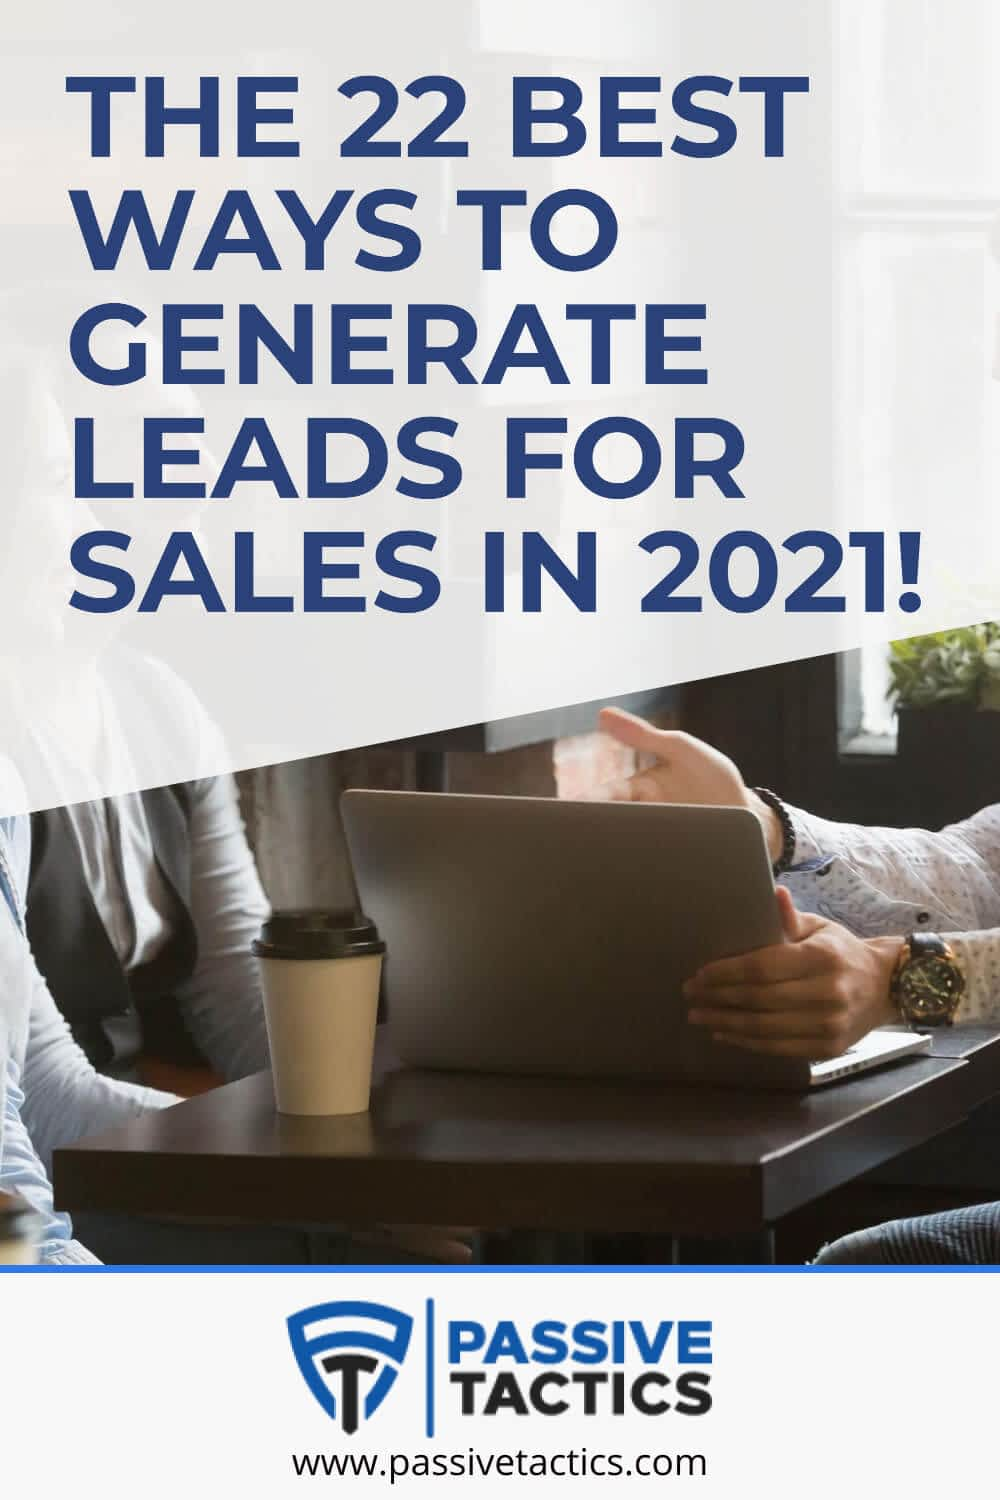 The 22 Best Ways To Generate Leads For Sales In 2021!